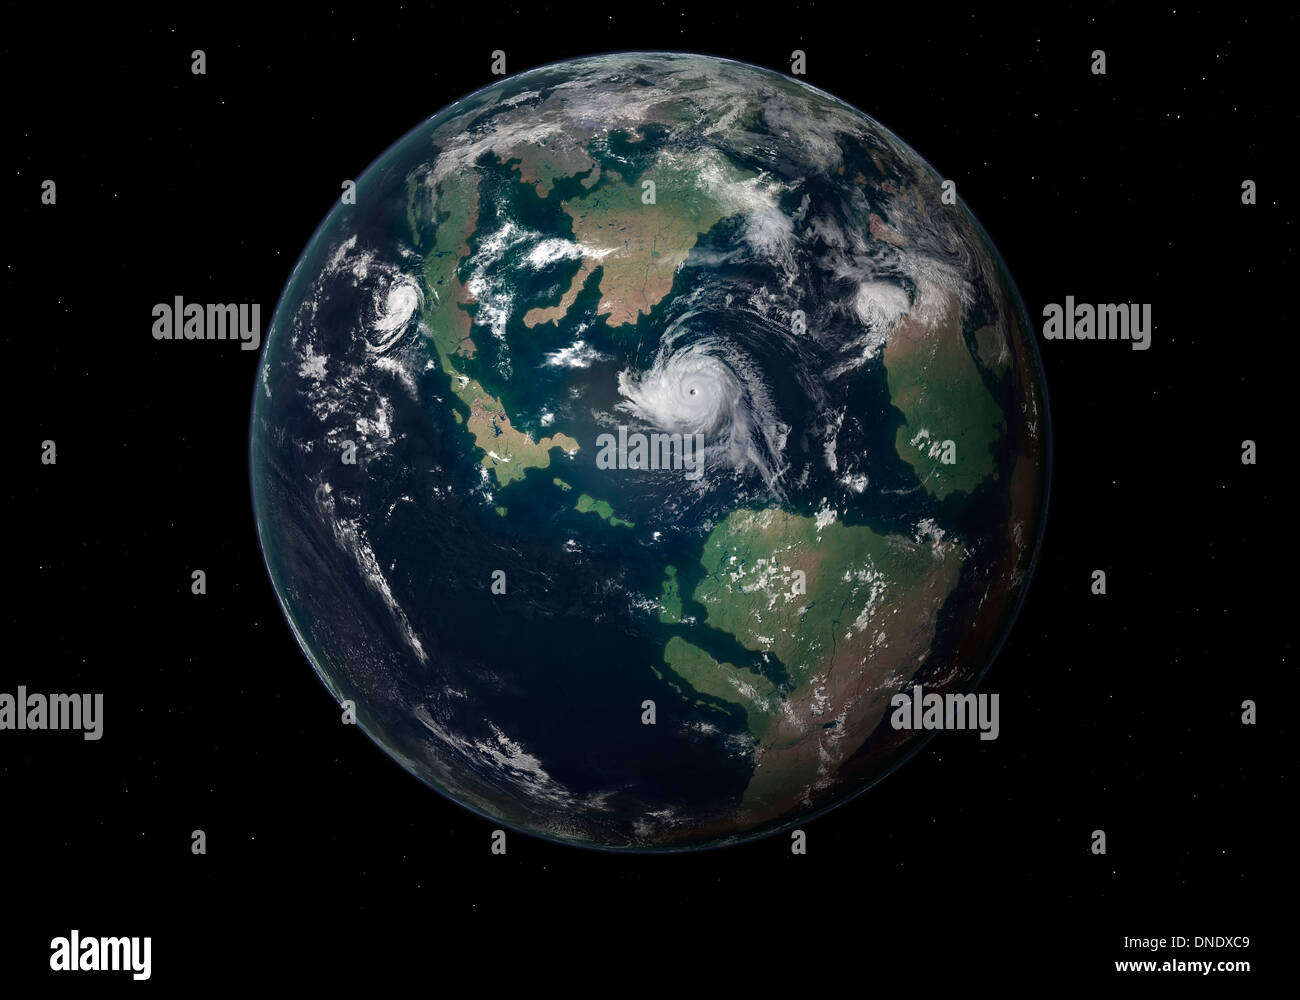 Planet Earth 90 million years ago during the Late Cretaceous Period. - Stock Image